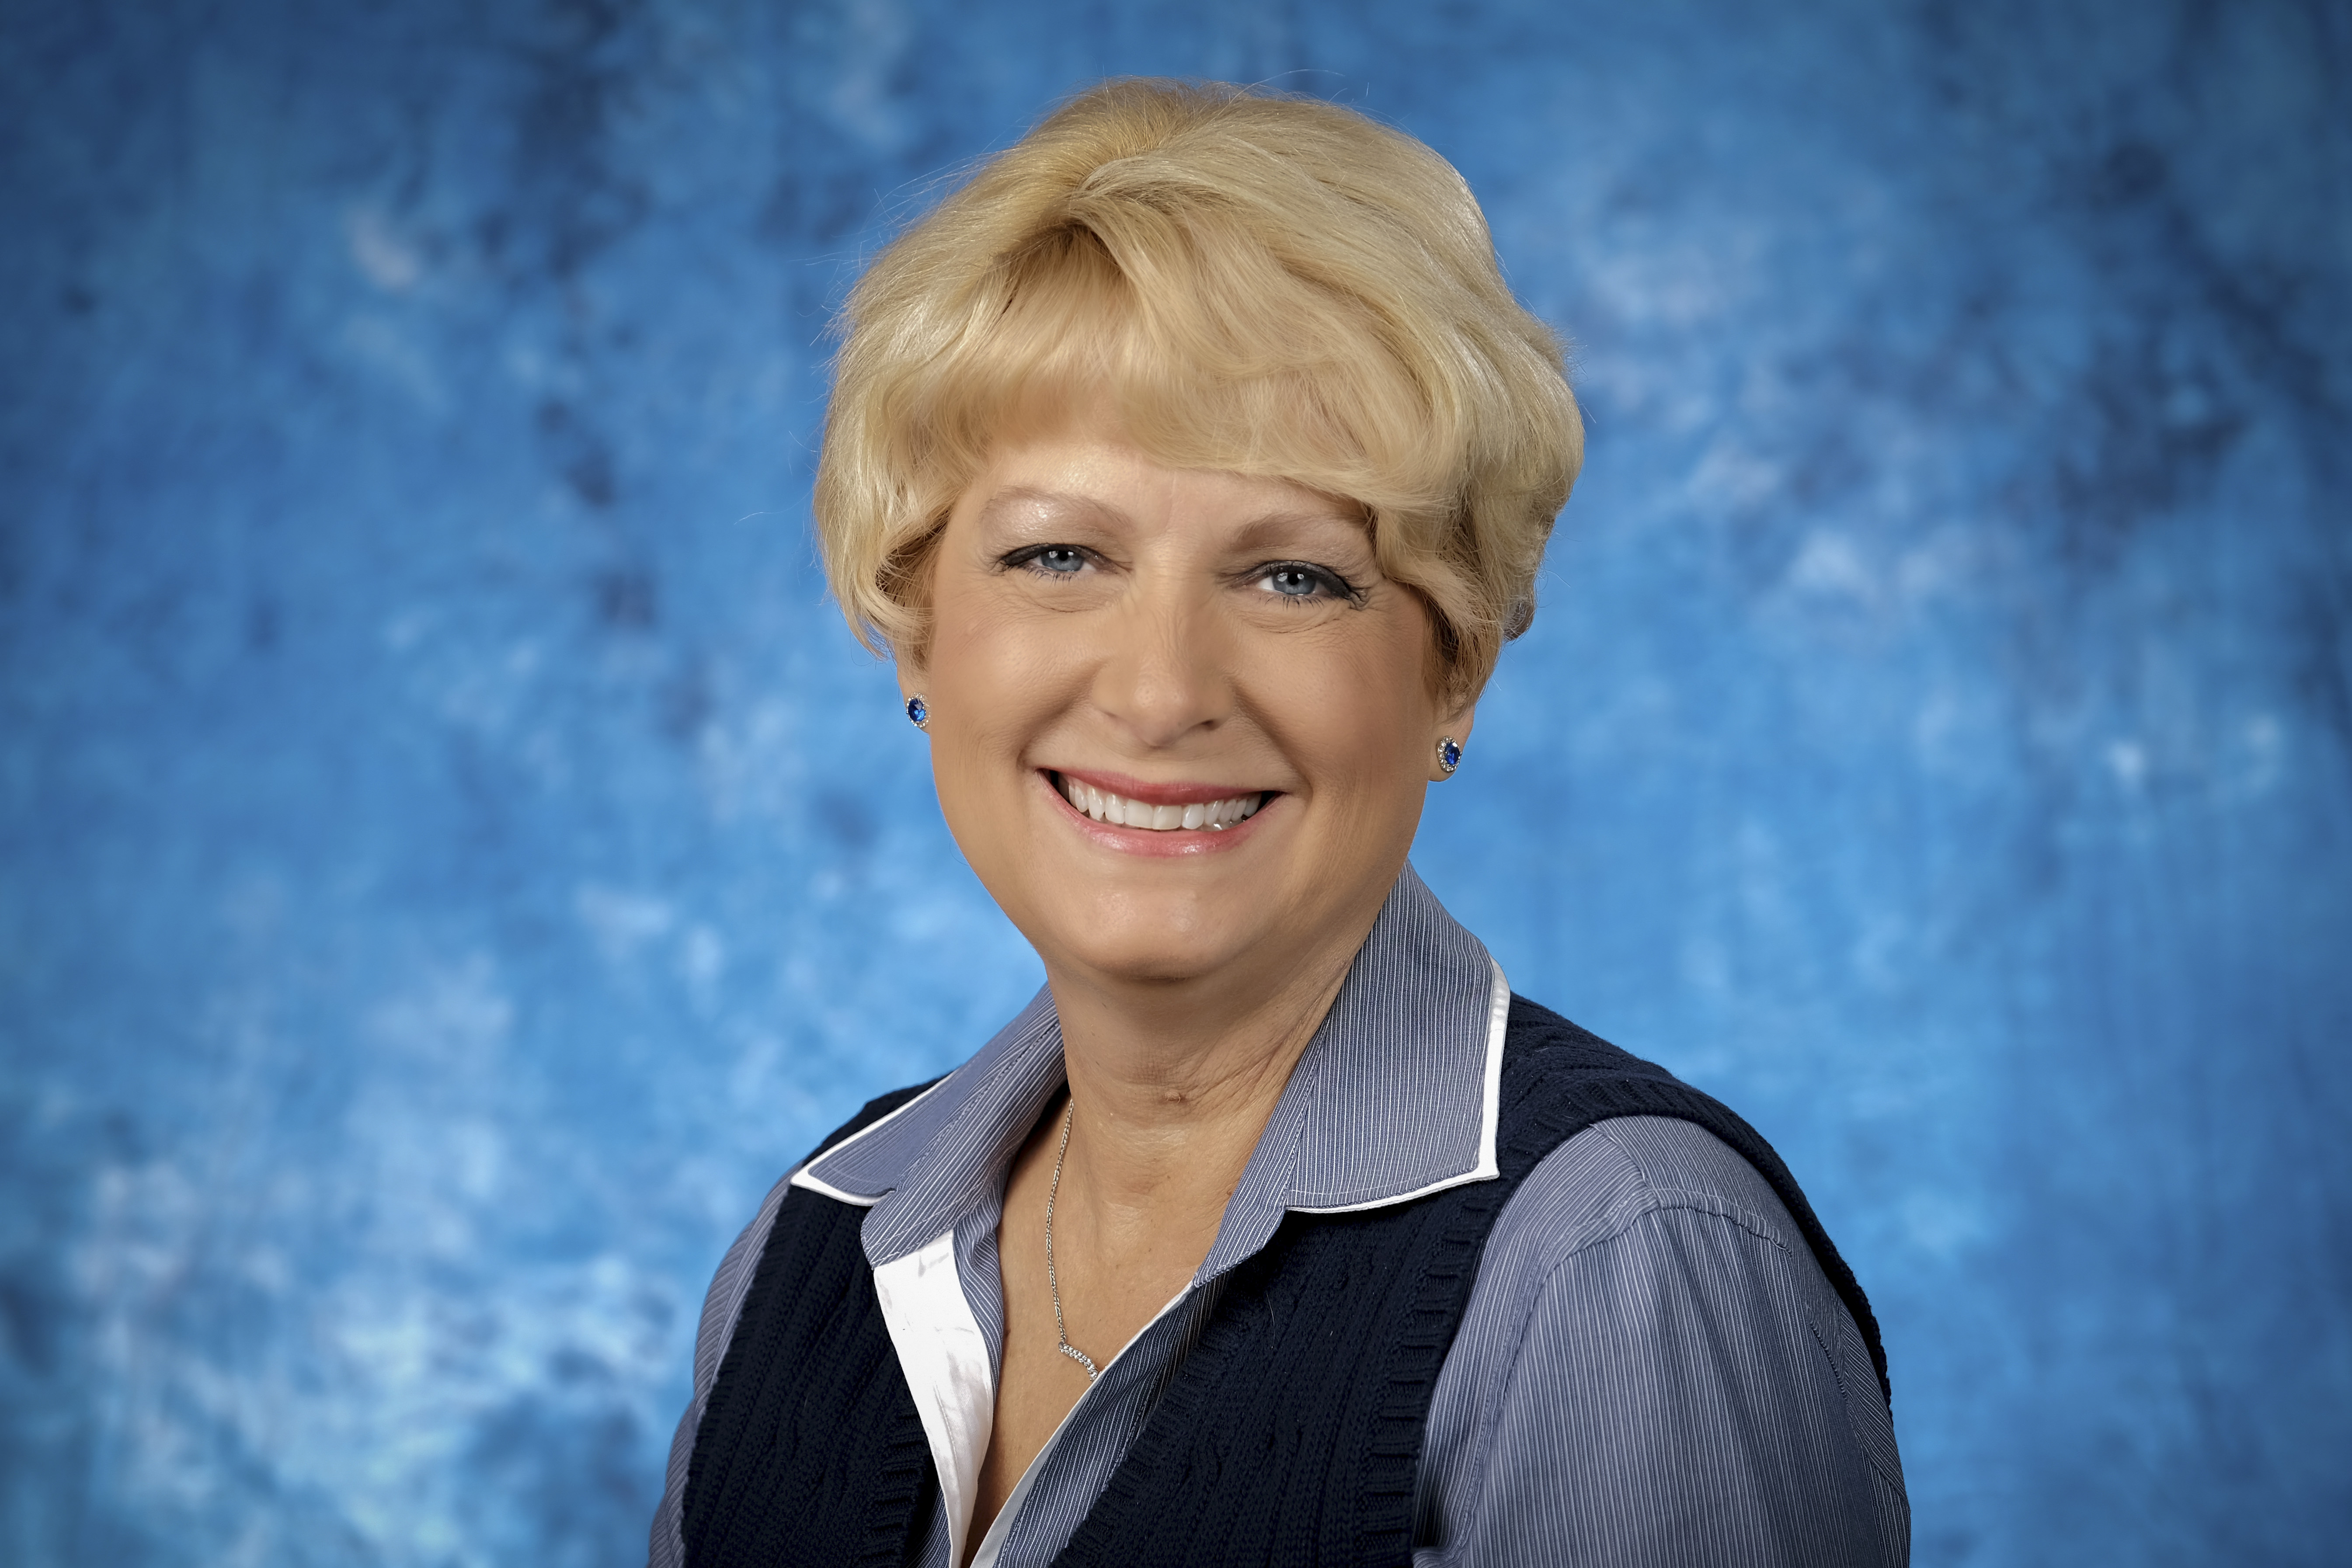 Janice Klostermeier, Senior Vice President of Finance and Chief Financial Officer (Photo: Business Wire)